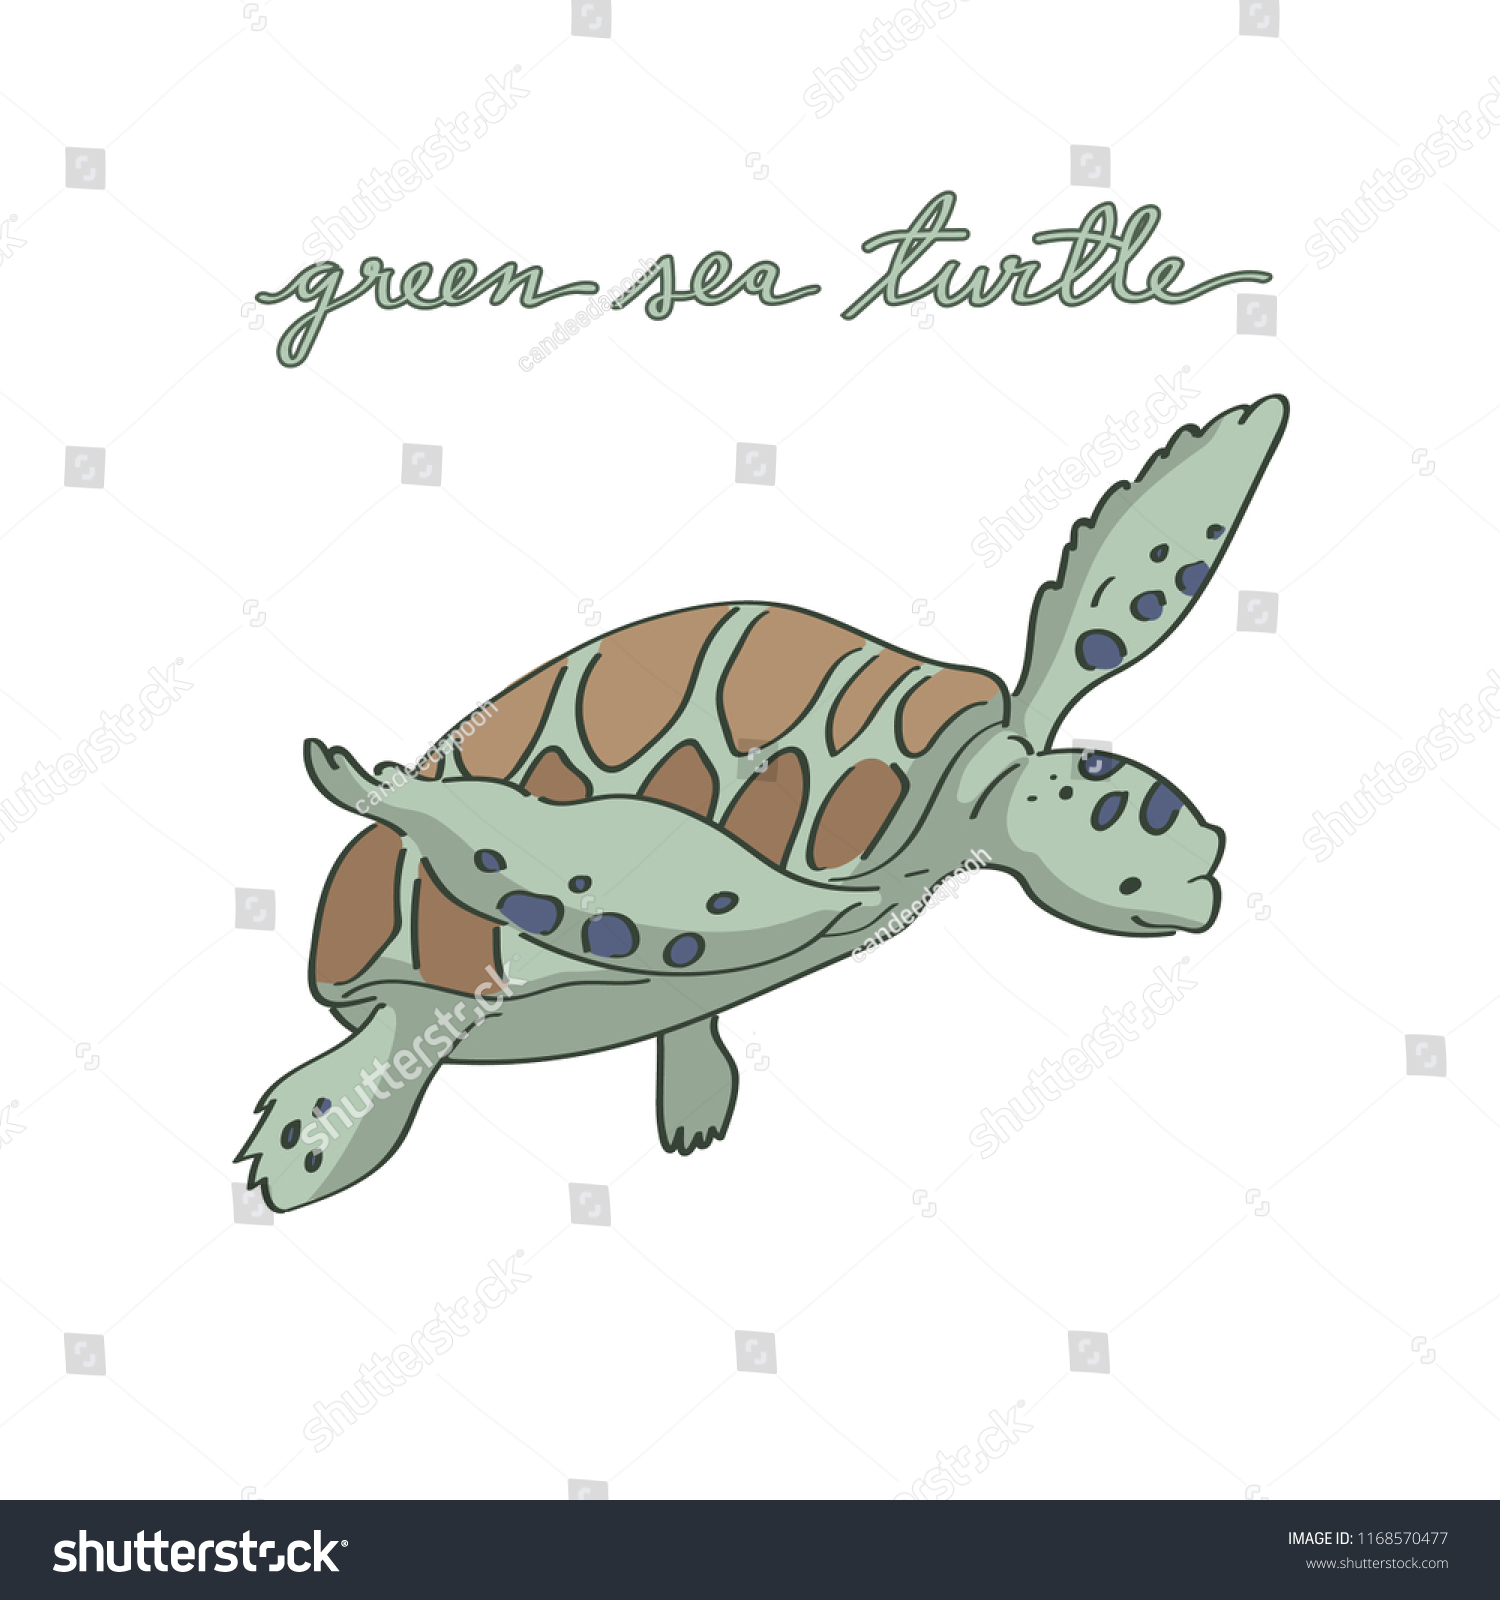 Cute Baby Green Sea Turtle Illustration Stock Vector Royalty Free